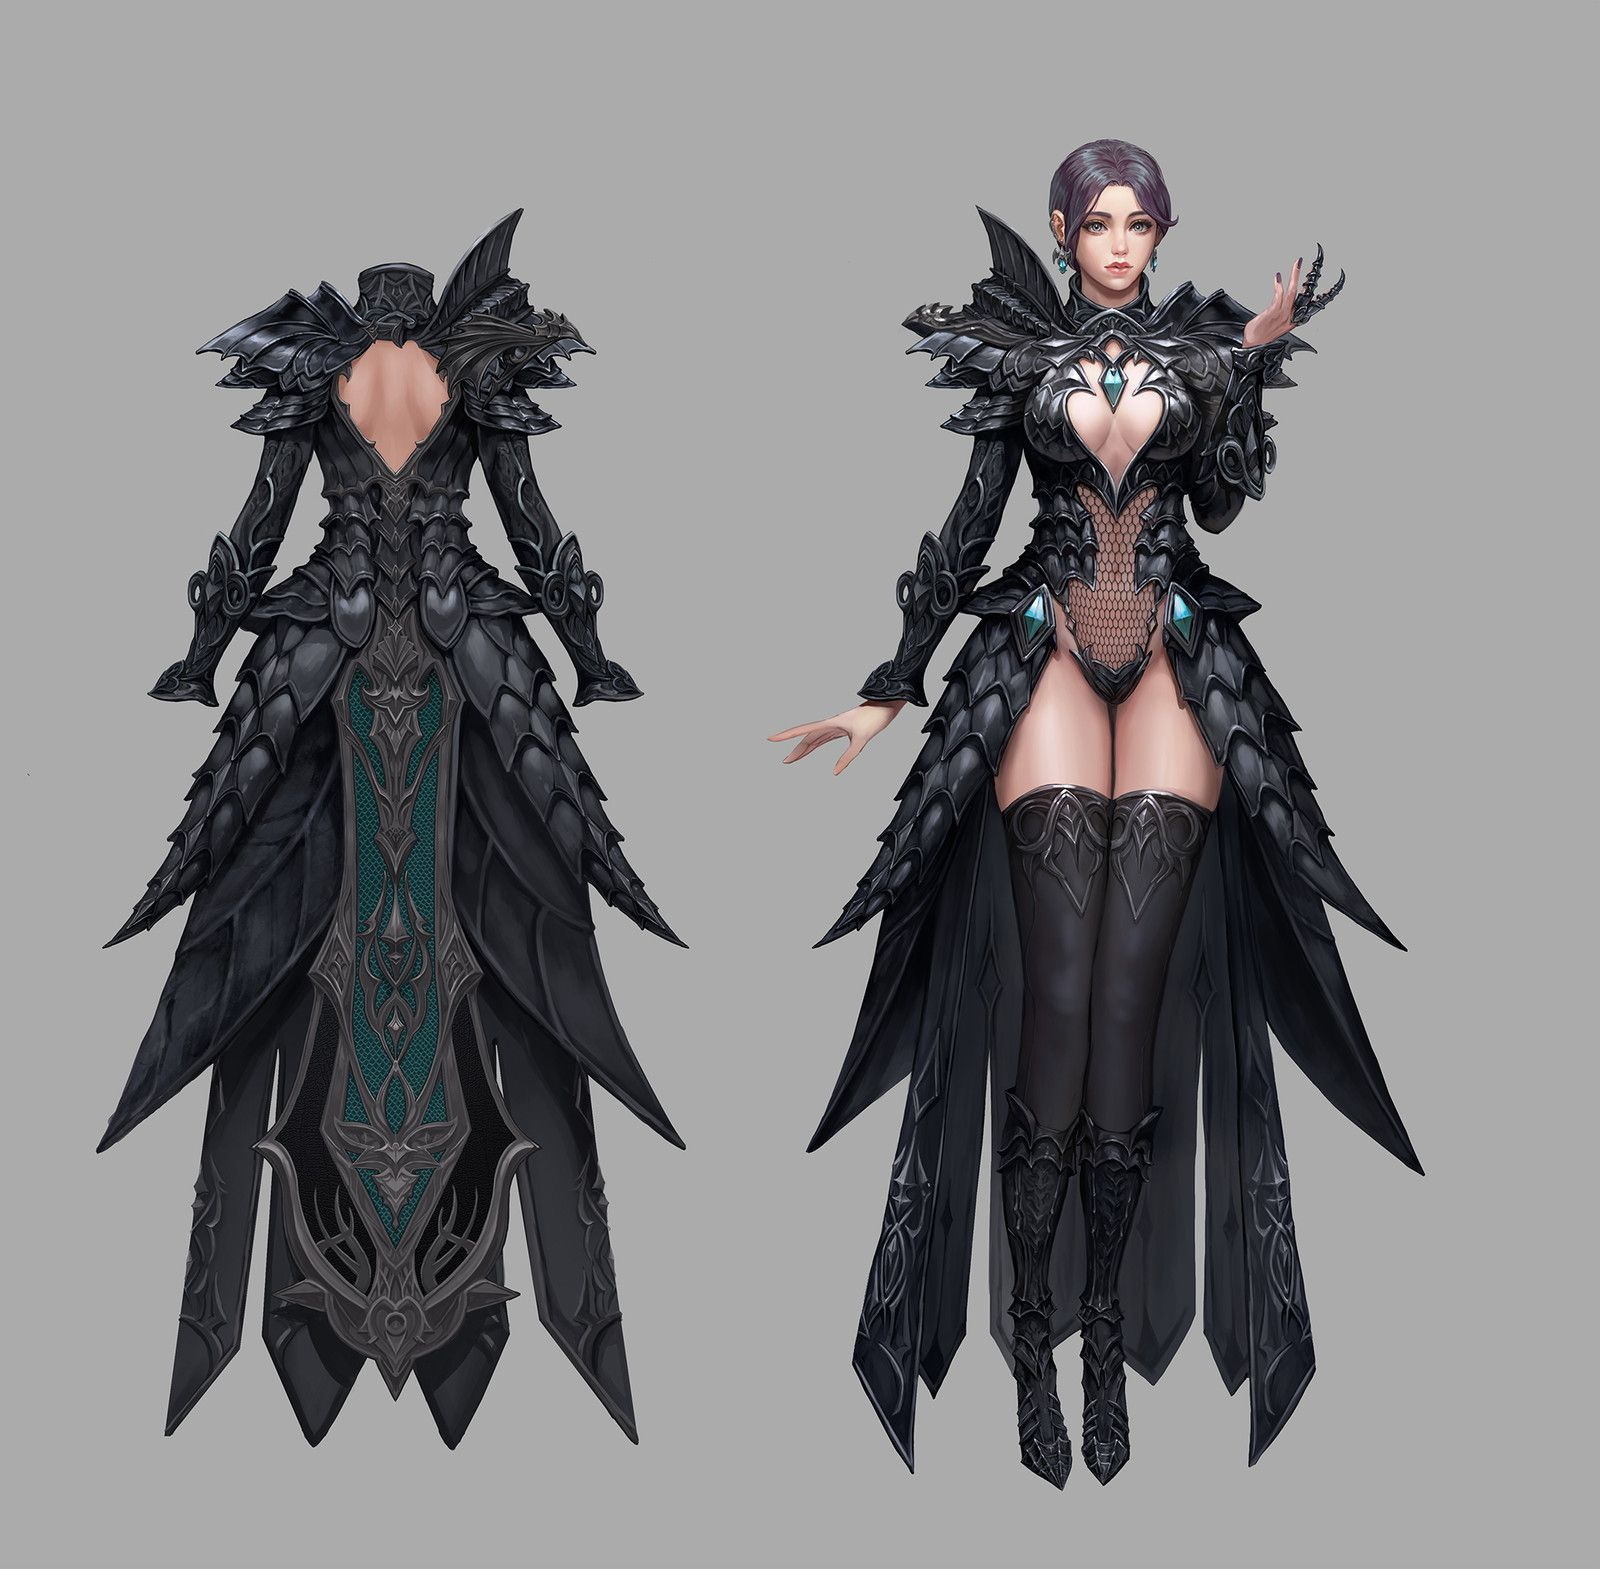 Pin On Character Dragon armors come in light dragonscale armor and heavy dragonplate armor varieties. pinterest